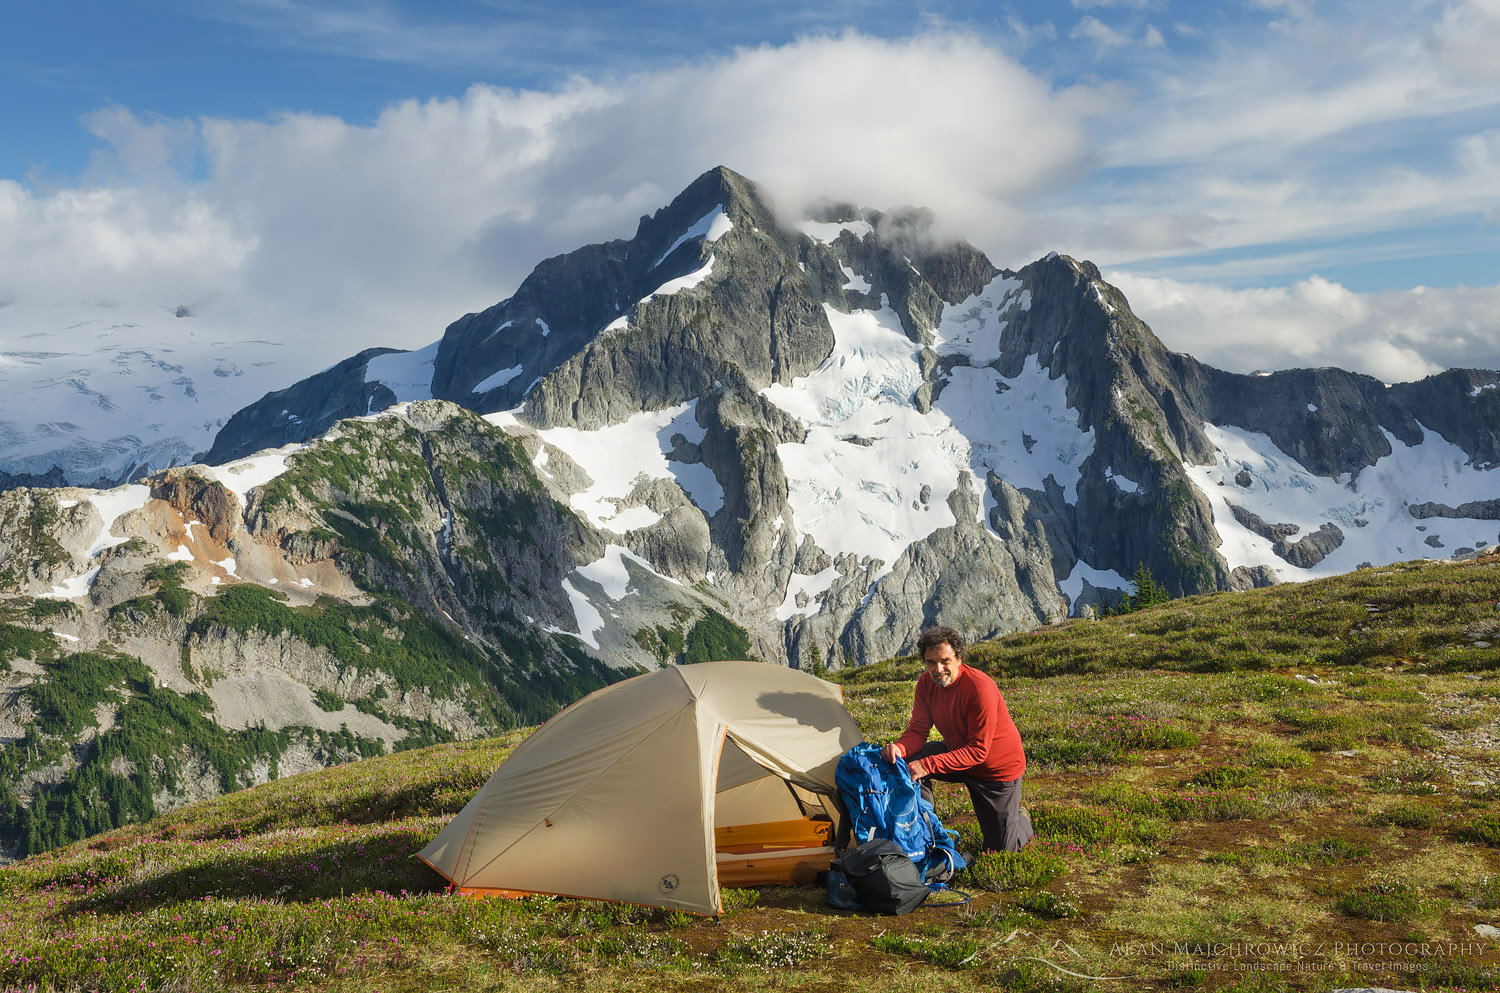 Backcountry Camp North Cascades National Park Backpacking Photography Gear Tips